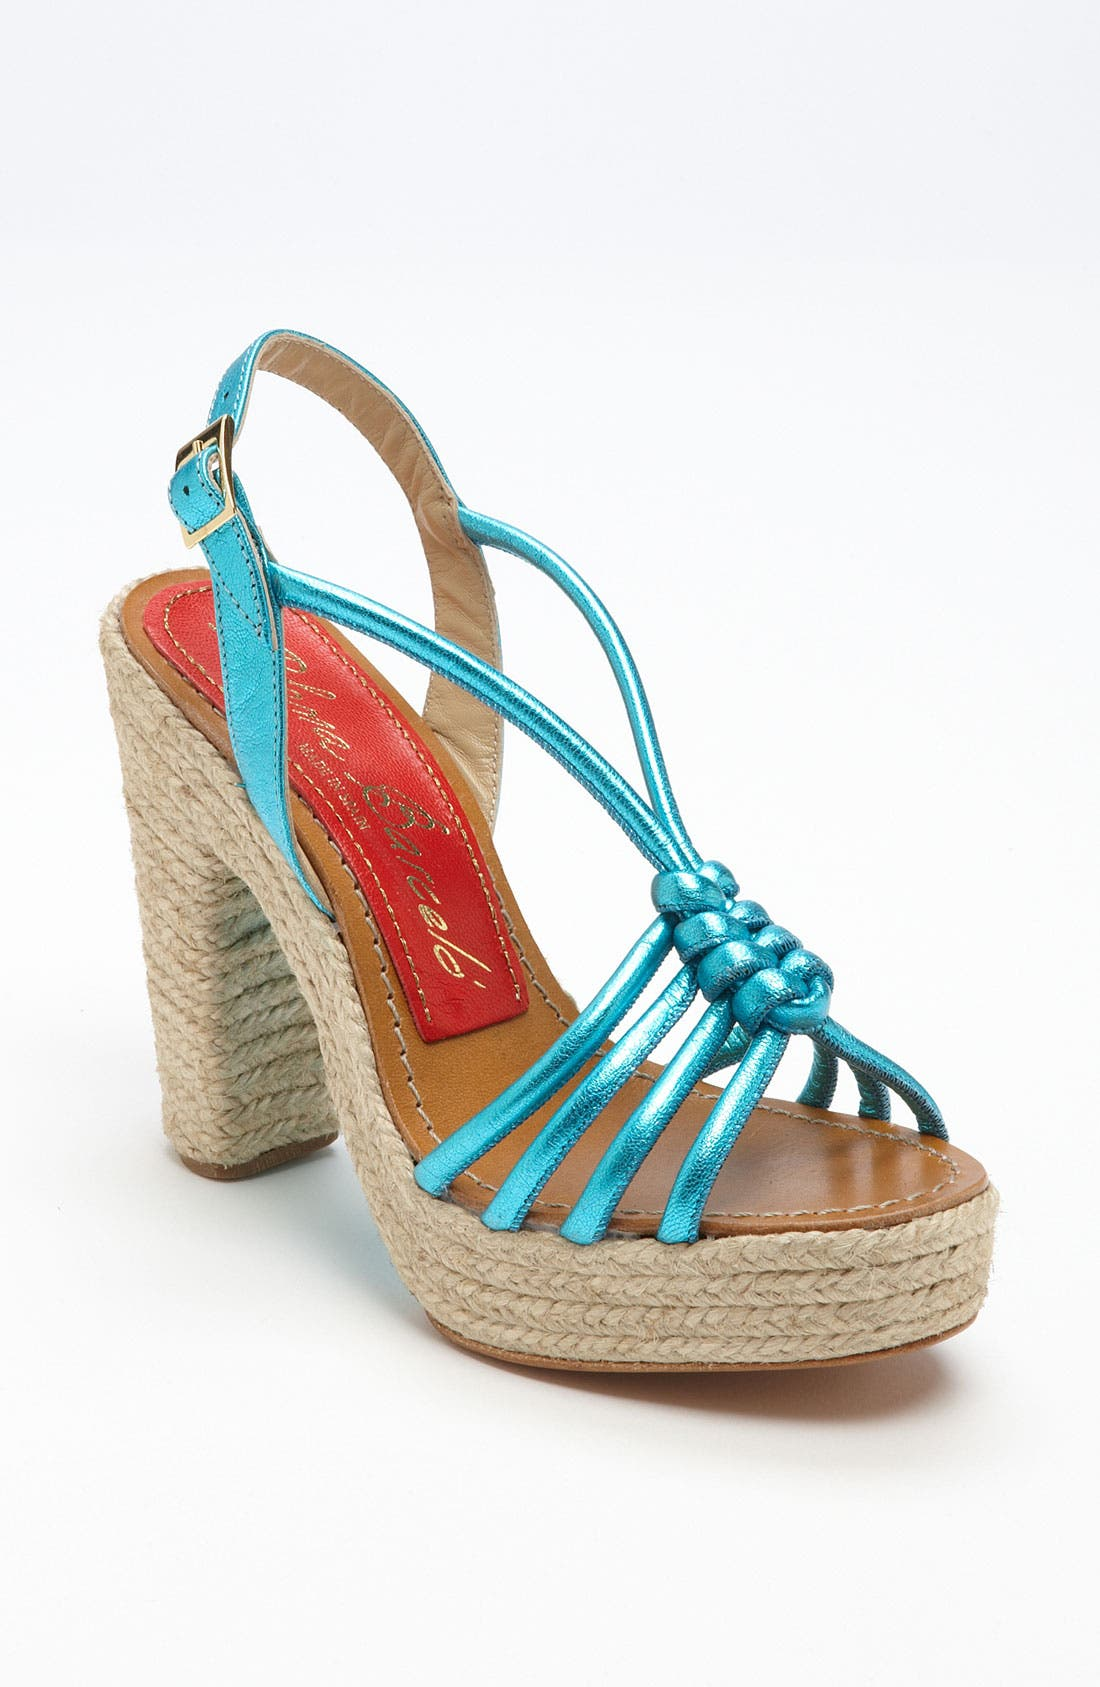 Alternate Image 1 Selected - Paloma Barcelo Espadrille Sandal